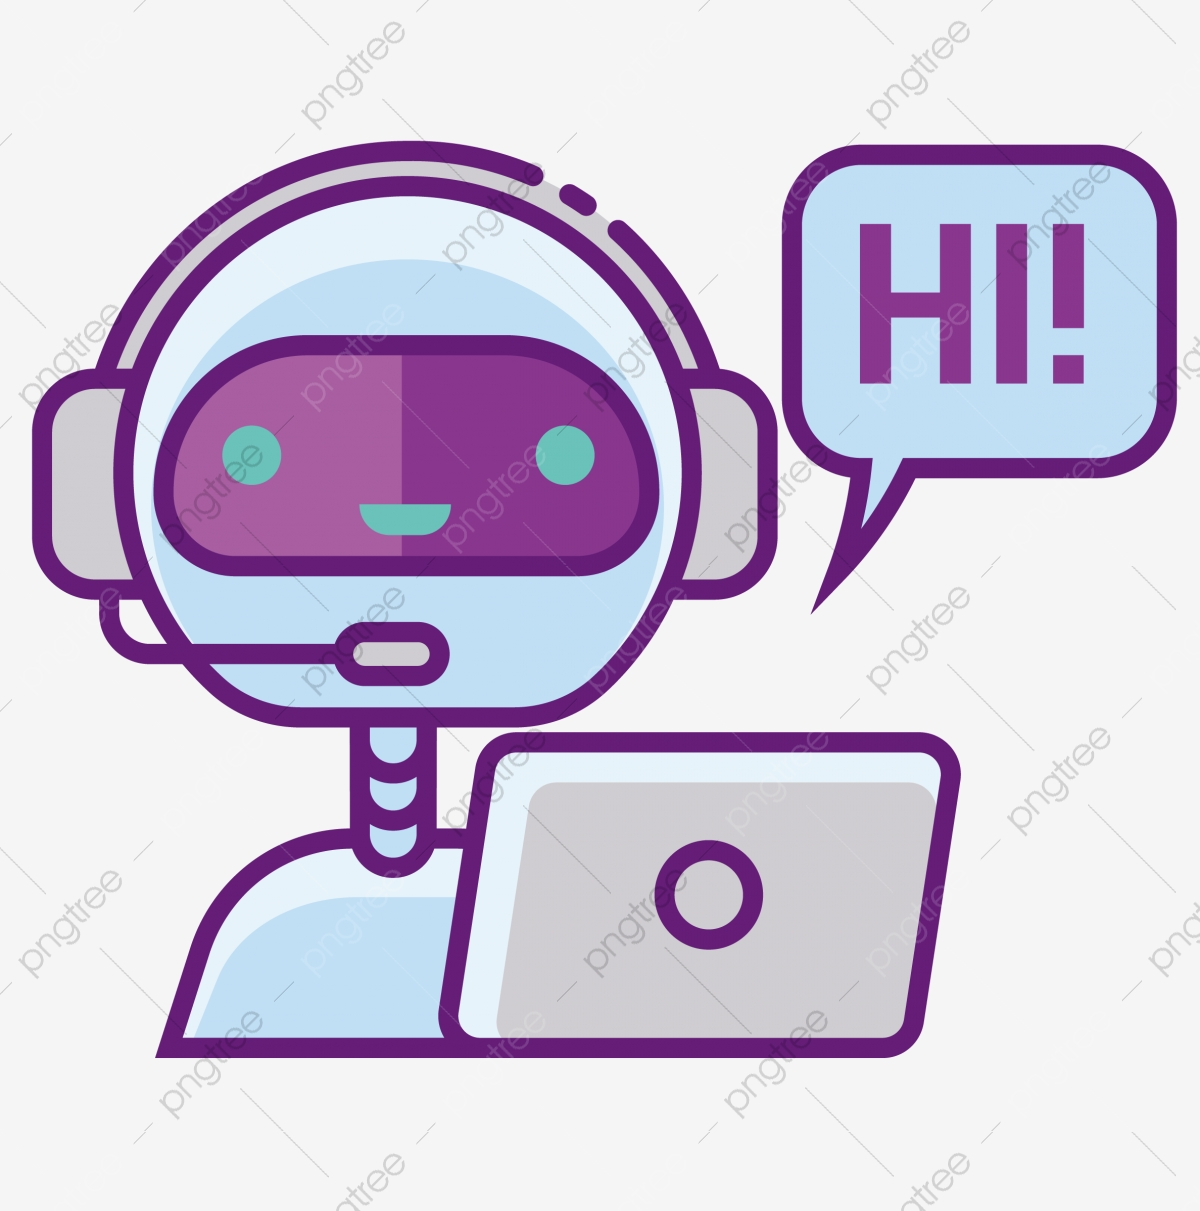 hight resolution of commercial use resource upgrade to premium plan and get license authorization upgradenow robot robot clipart